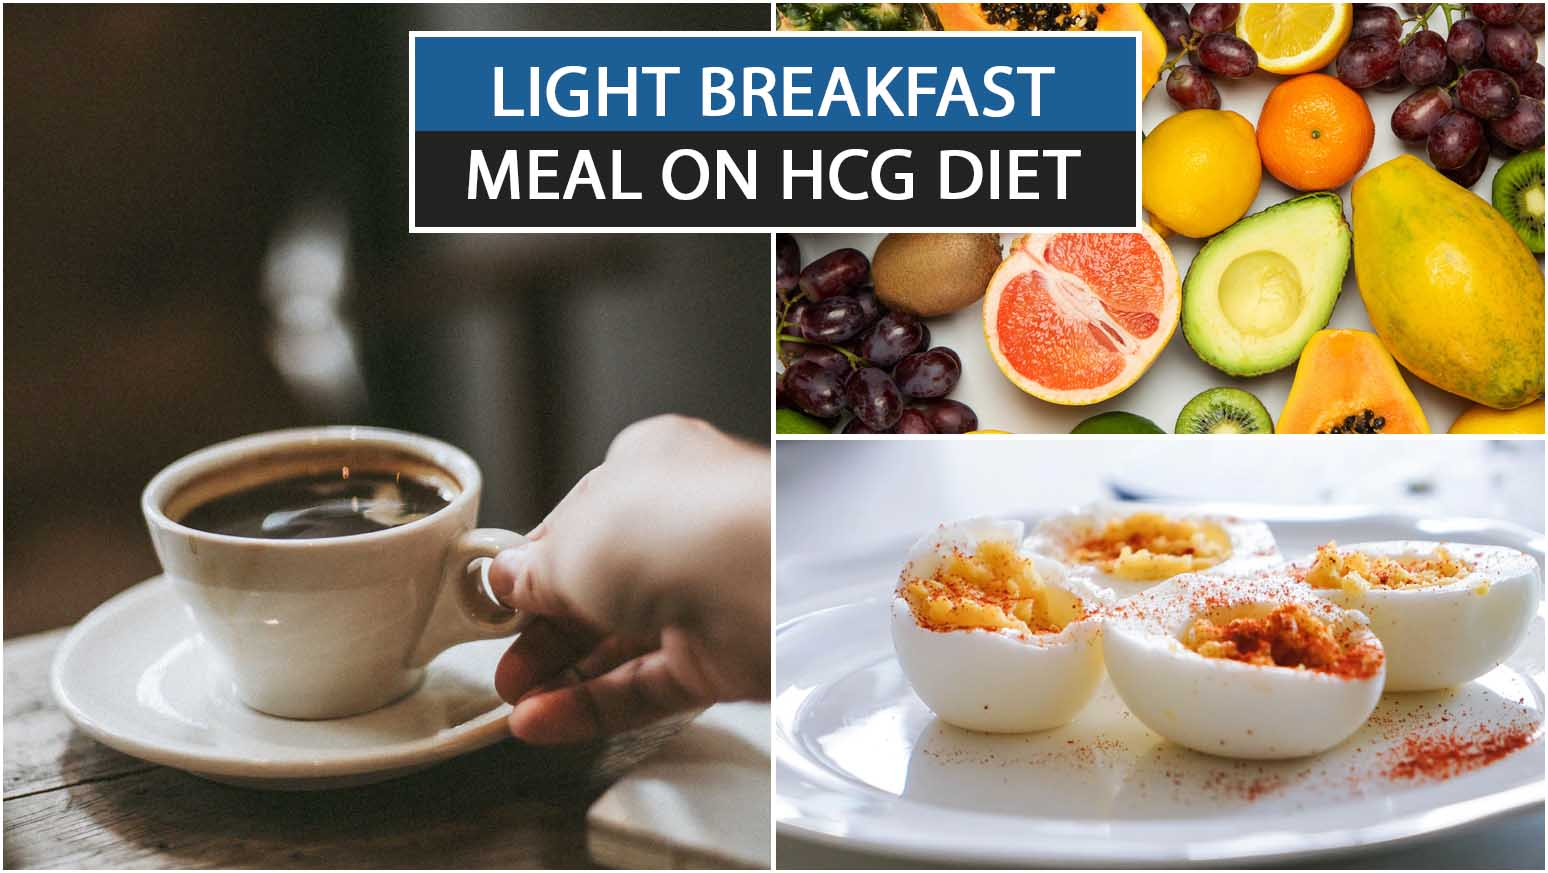 LIGHT BREAKFAST MEAL ON HCG DIET